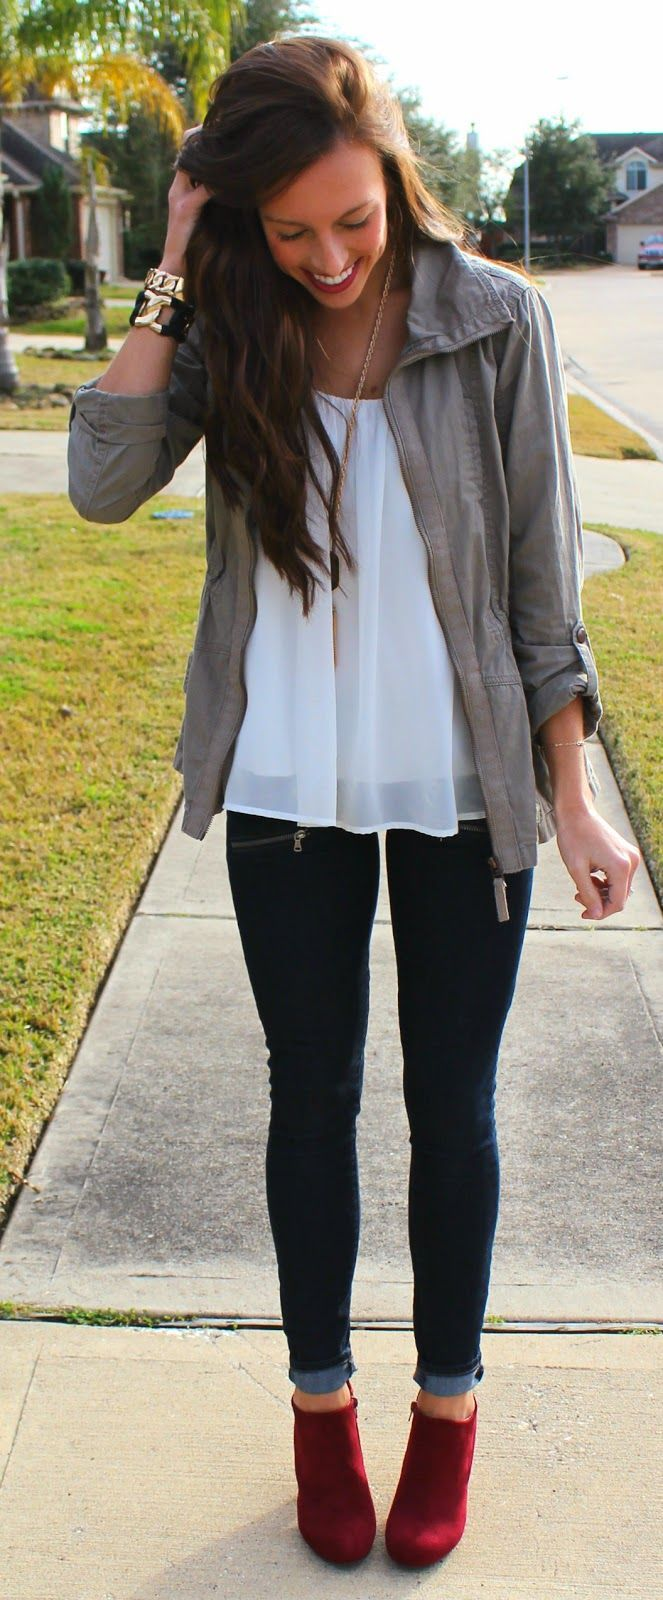 Super cute outfit idea. Those red shoes pop! I would probably switch them out for nude or brown, but this is cute.